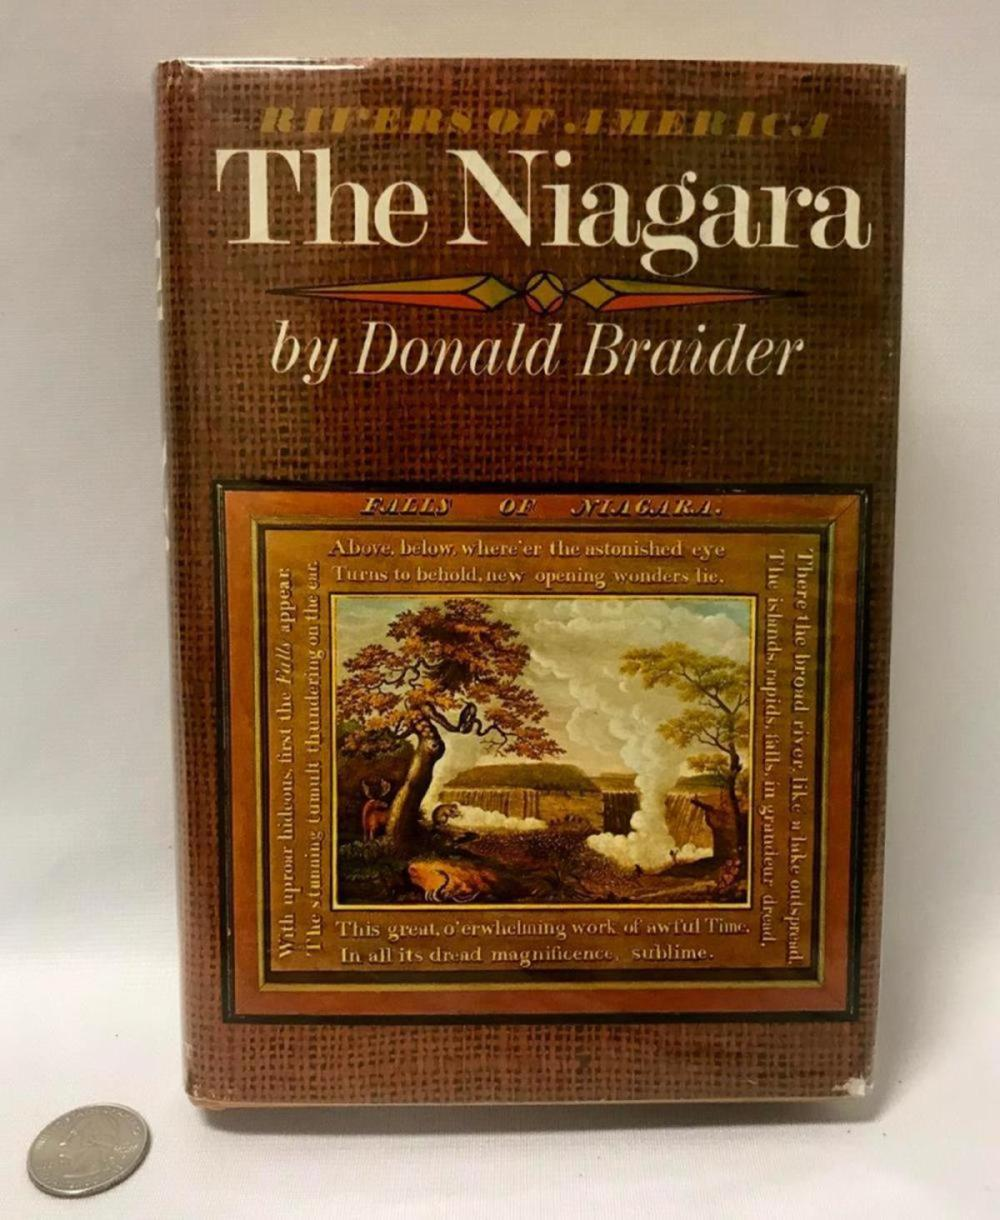 1972 Rivers Of America: The Niagara By Donald Braider W/ Dust Jacket FIRST EDITION